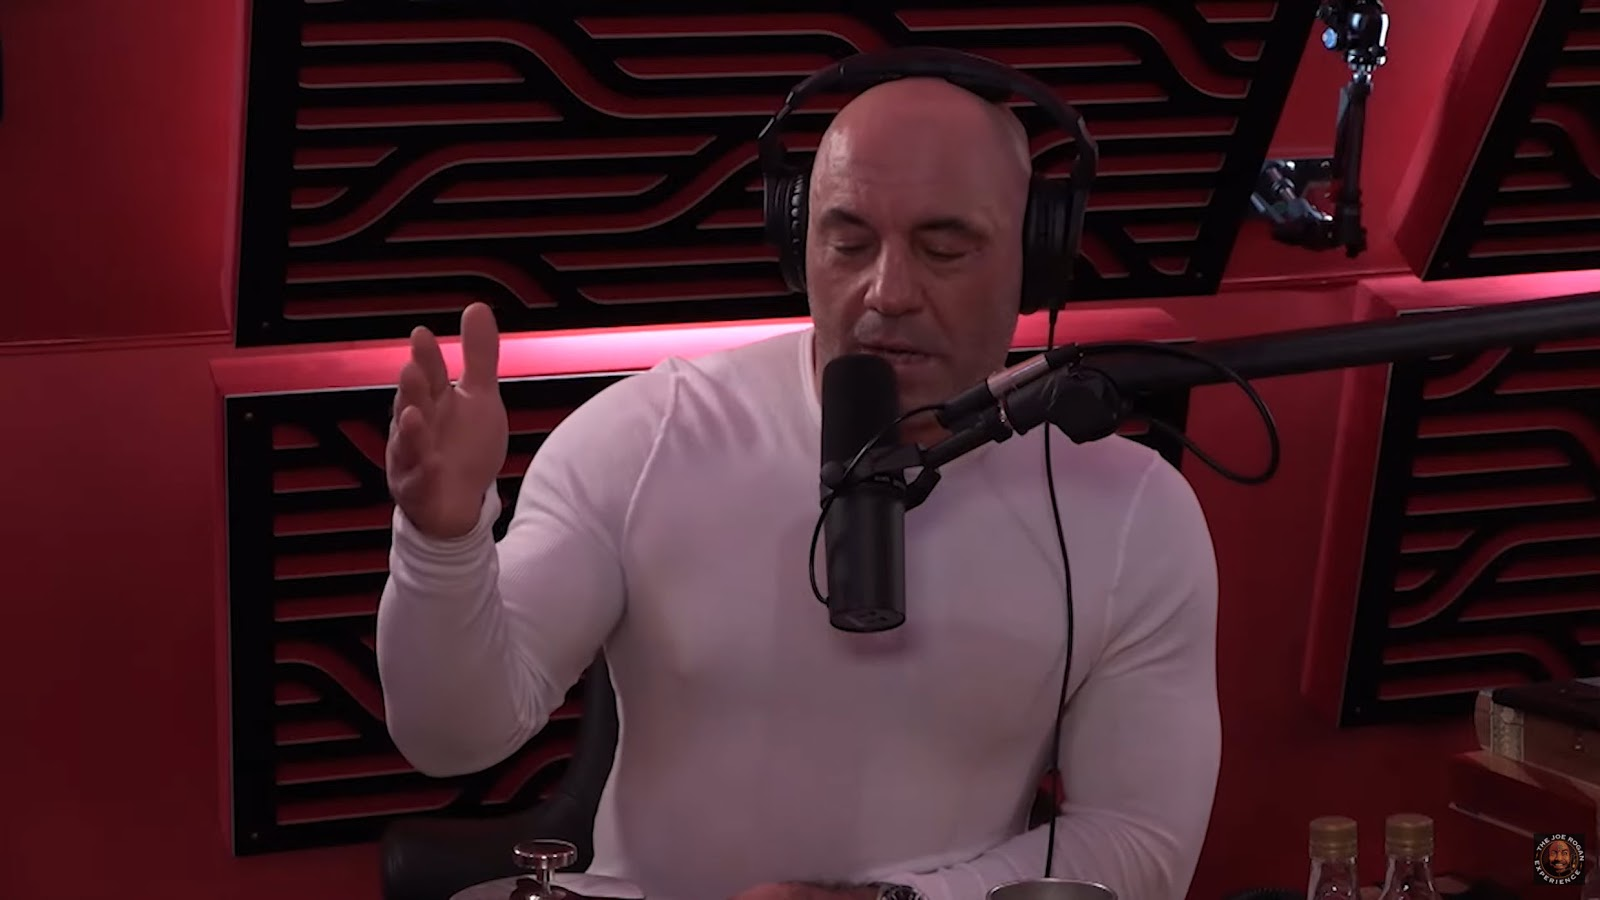 Joe Rogan during a video version of his podcast, The Joe Rogan Experience